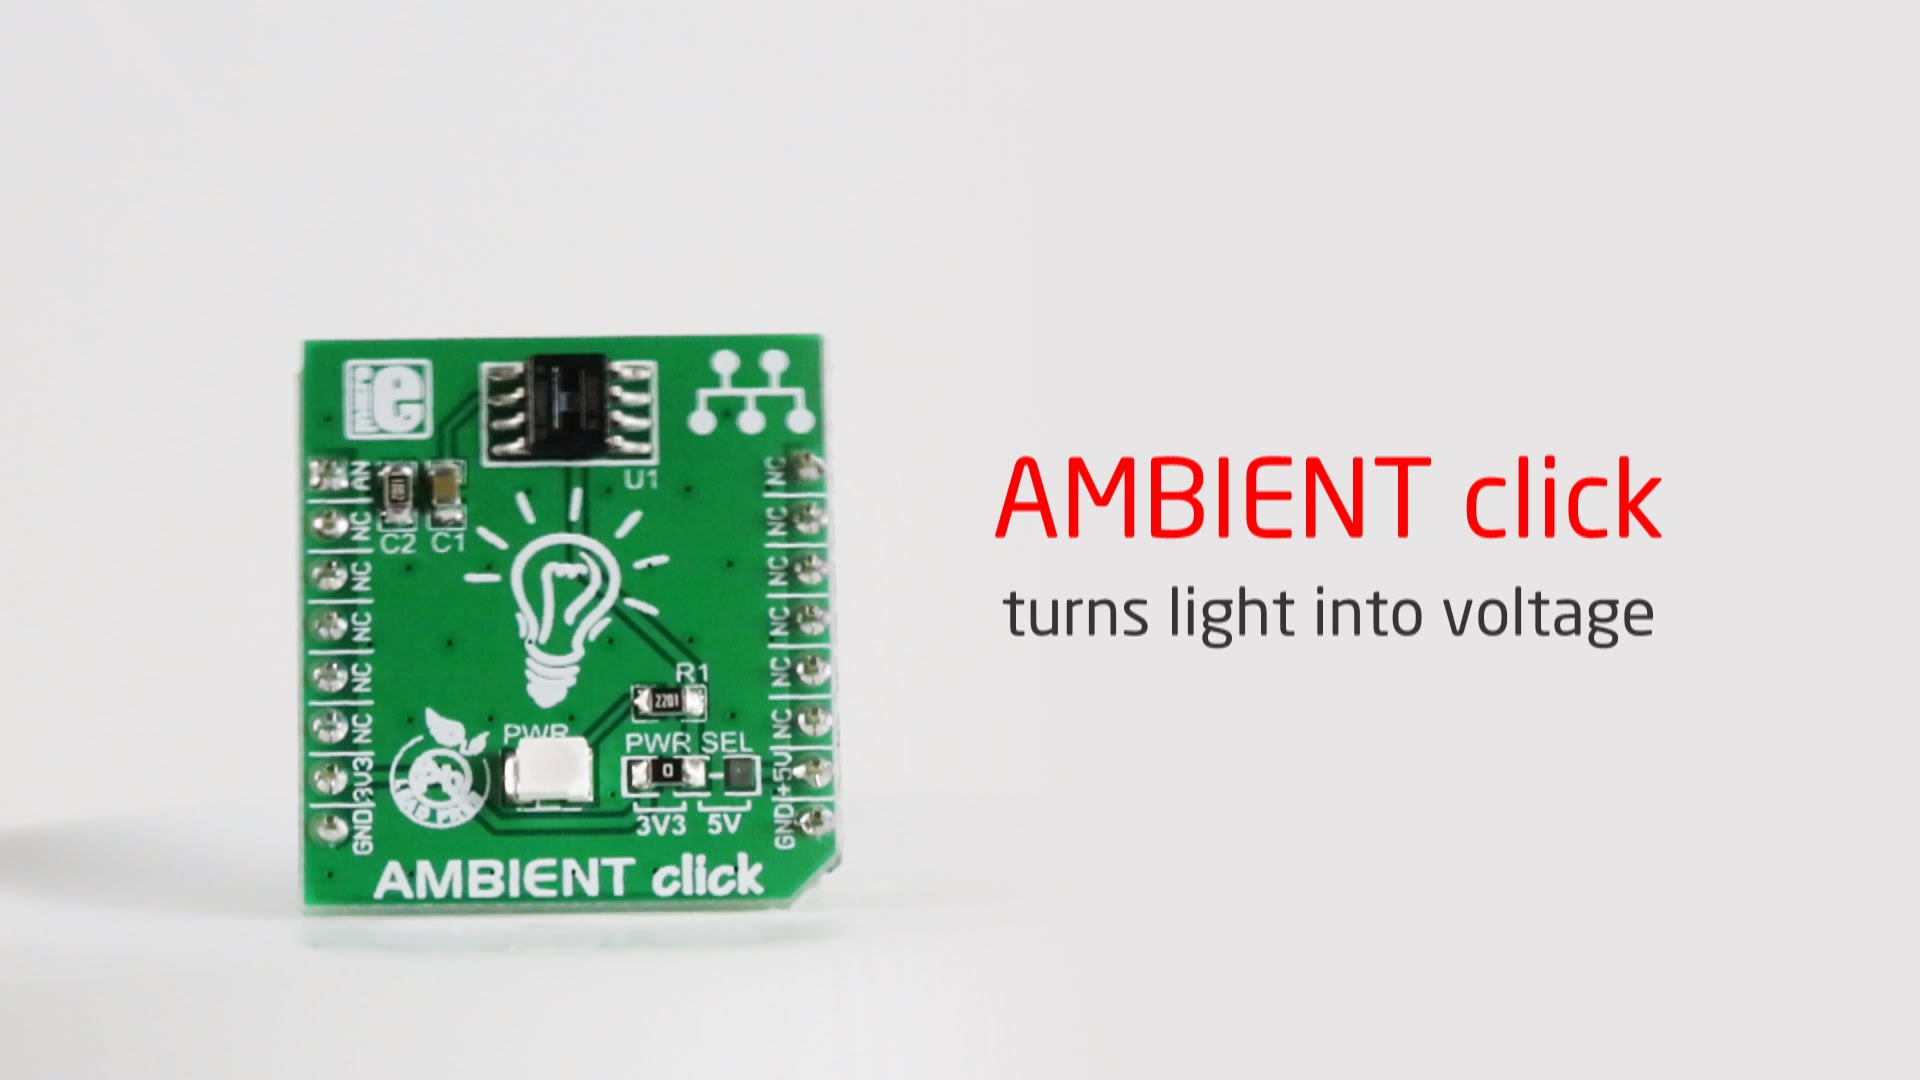 Ambient click released